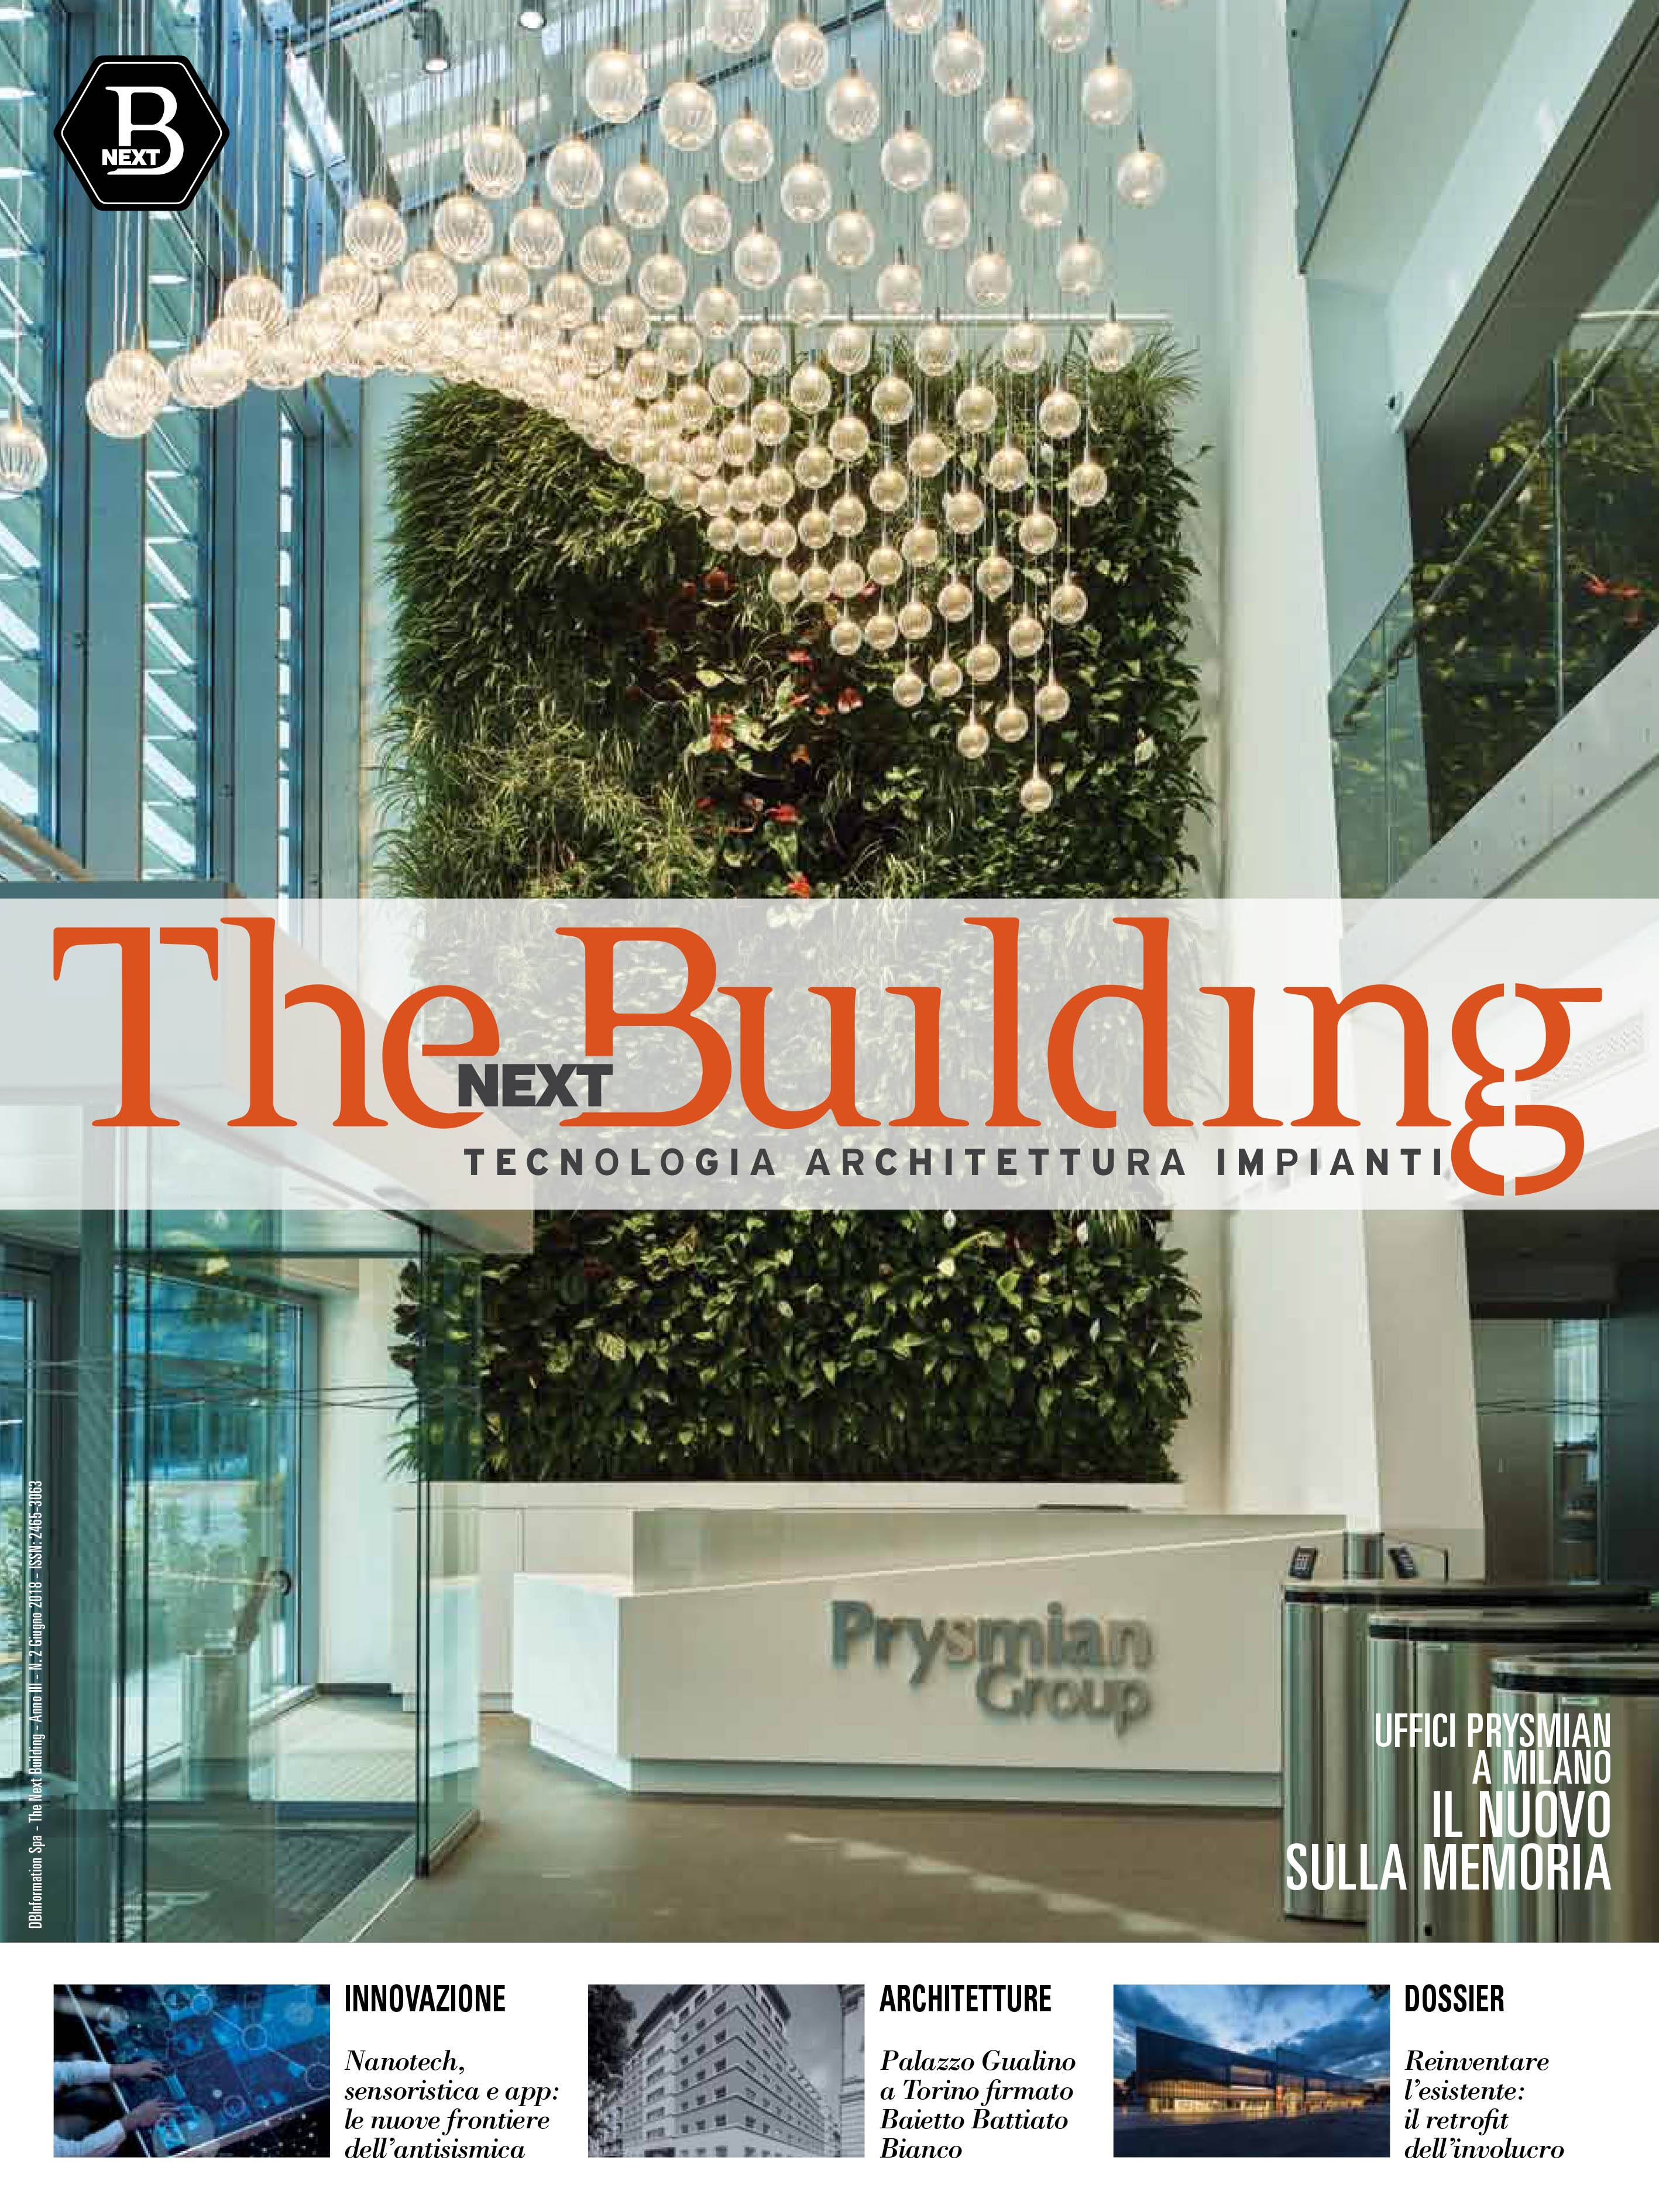 The next Building